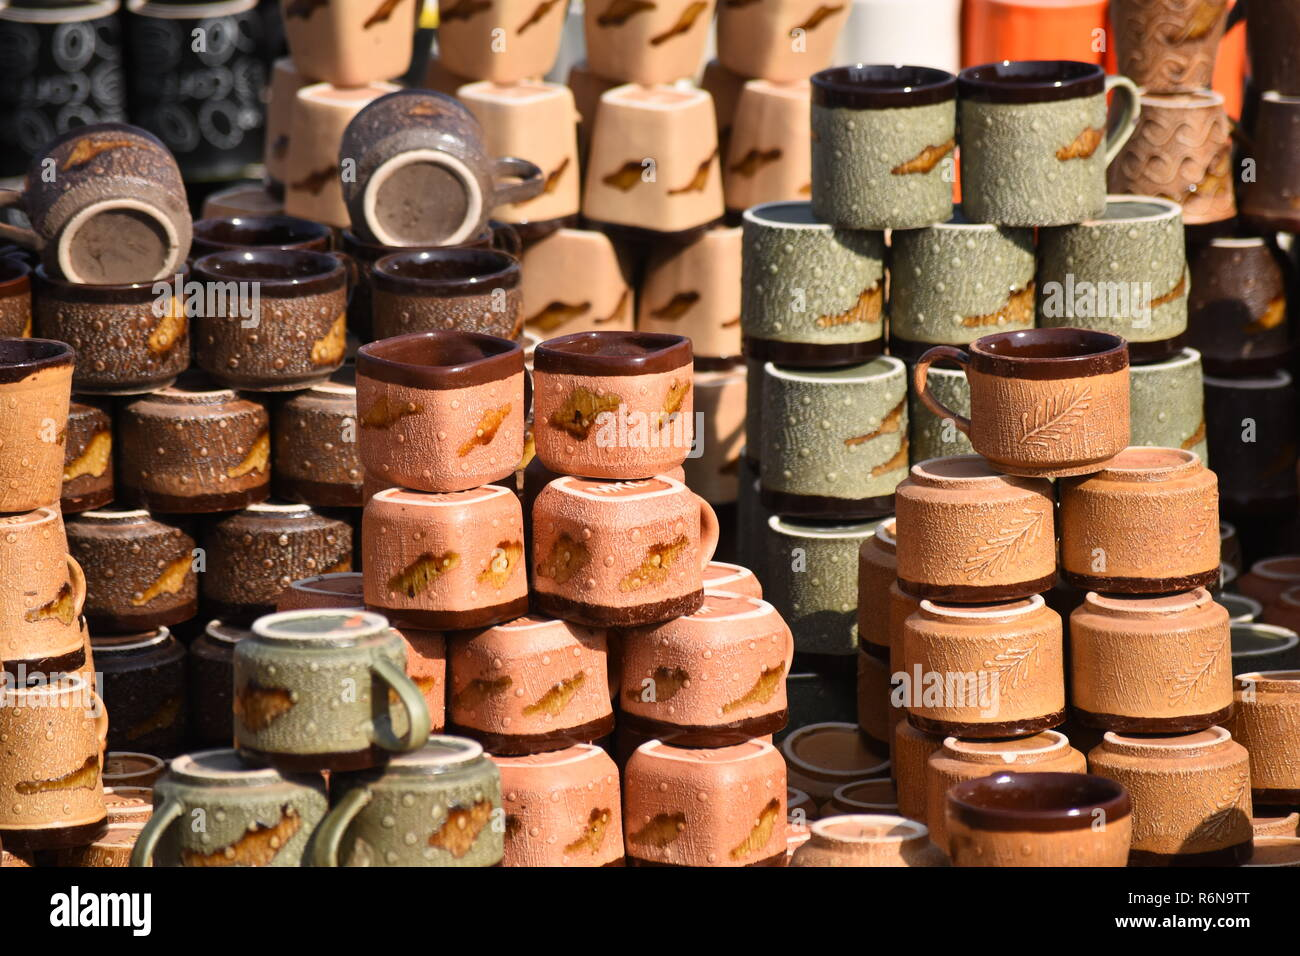 Clay Mugs High Resolution Stock Photography And Images Alamy